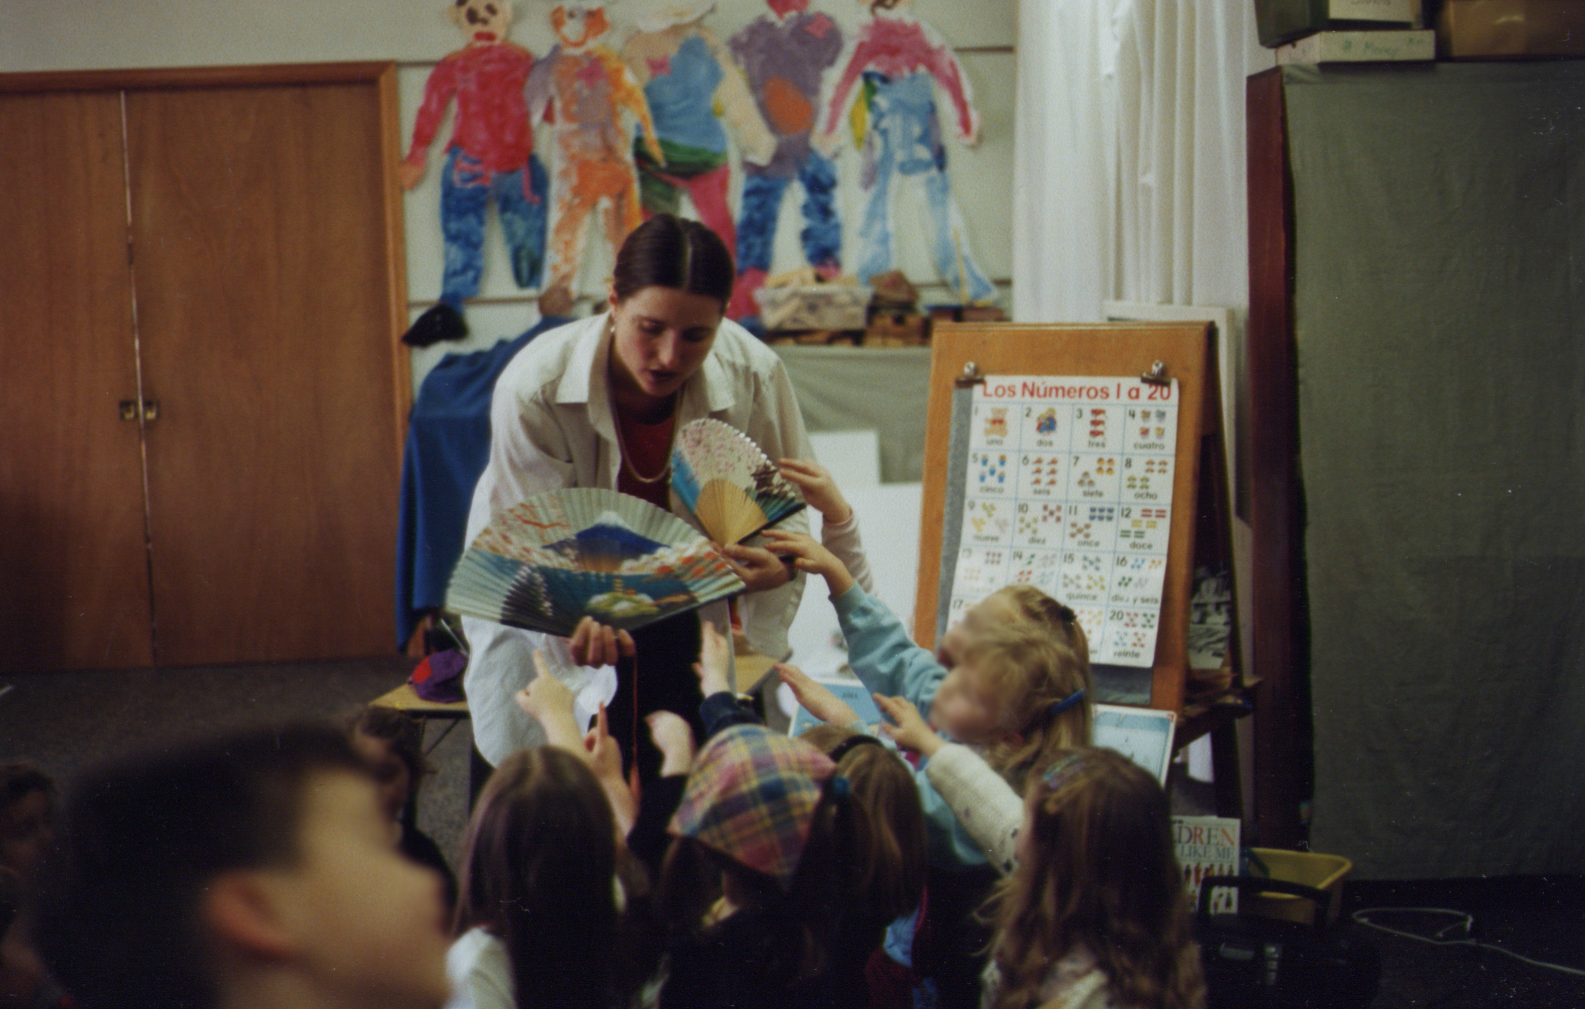 - Parent and Me Story, Song and Art Events - Live Paint will facilitate story, songs and music, puppetry, process oriented art projects and a lot of fun for the little ones in your lives. A great fit for daycares, libraries, preschools, parent and me groups and more.